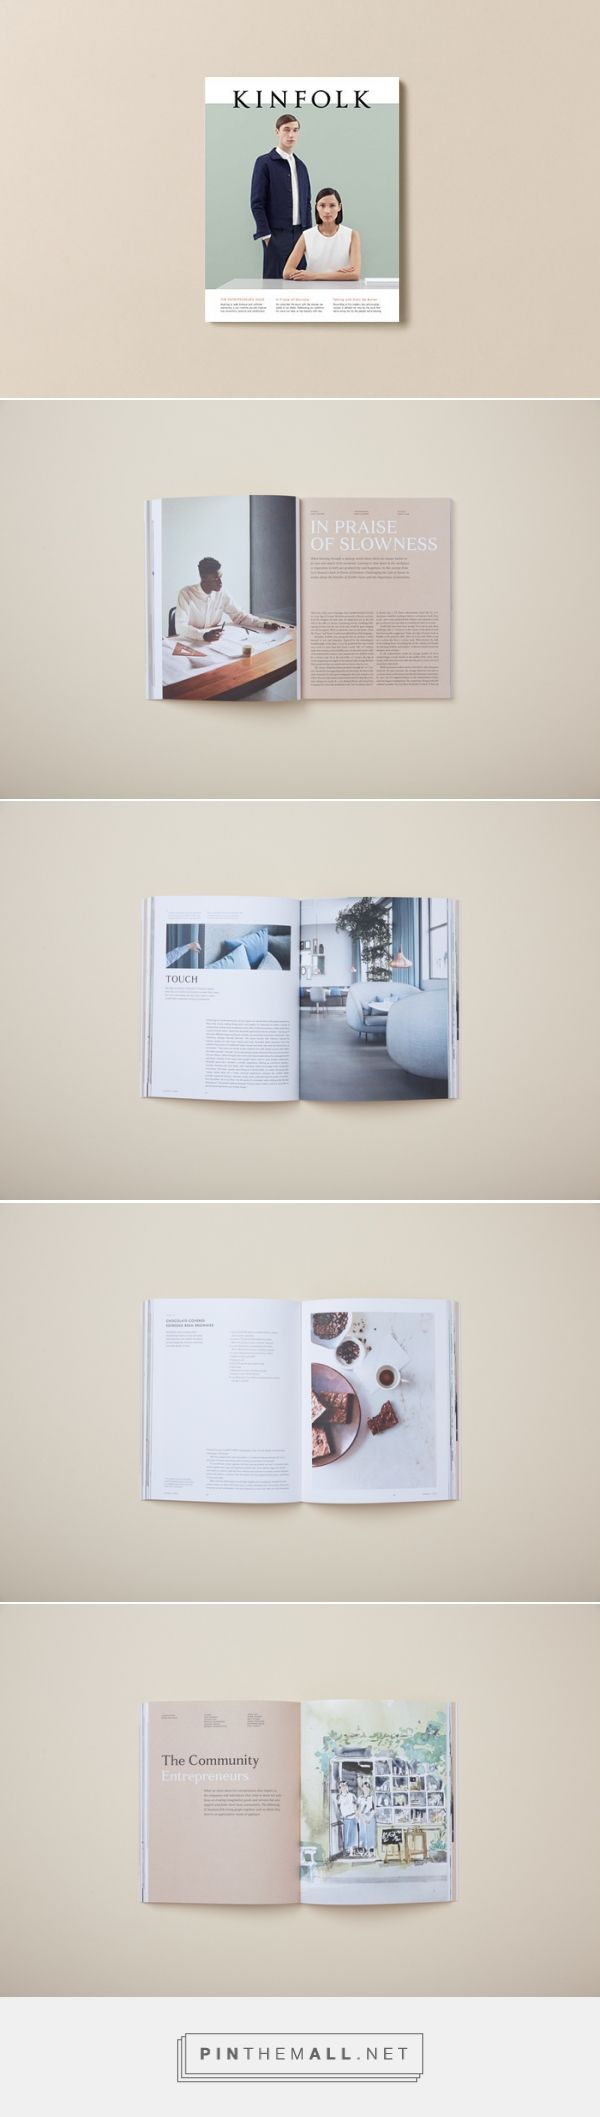 "Kinfolk Magazine, Issue 15 ""The Entrepreneurs Issue"" More"